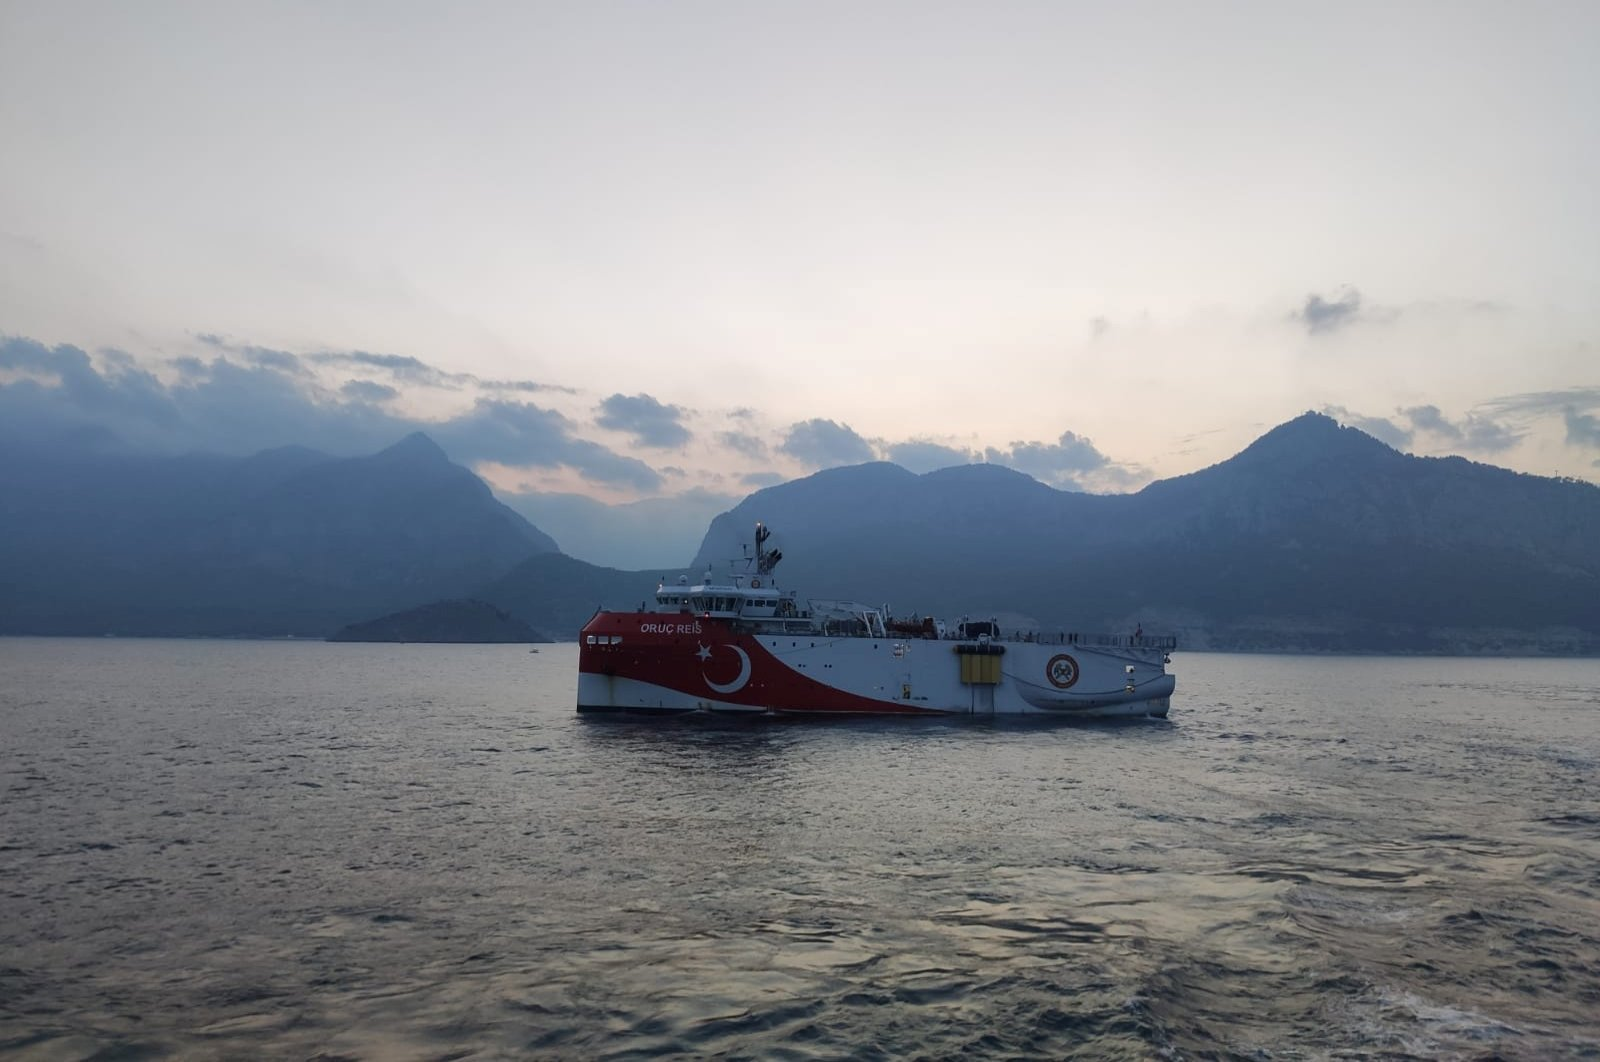 Turkish seismic research vessel Oruç Reis sails through the Mediterranean after leaving a port in Antalya, southern Turkey, Aug. 10, 2020. (Reuters Photo)